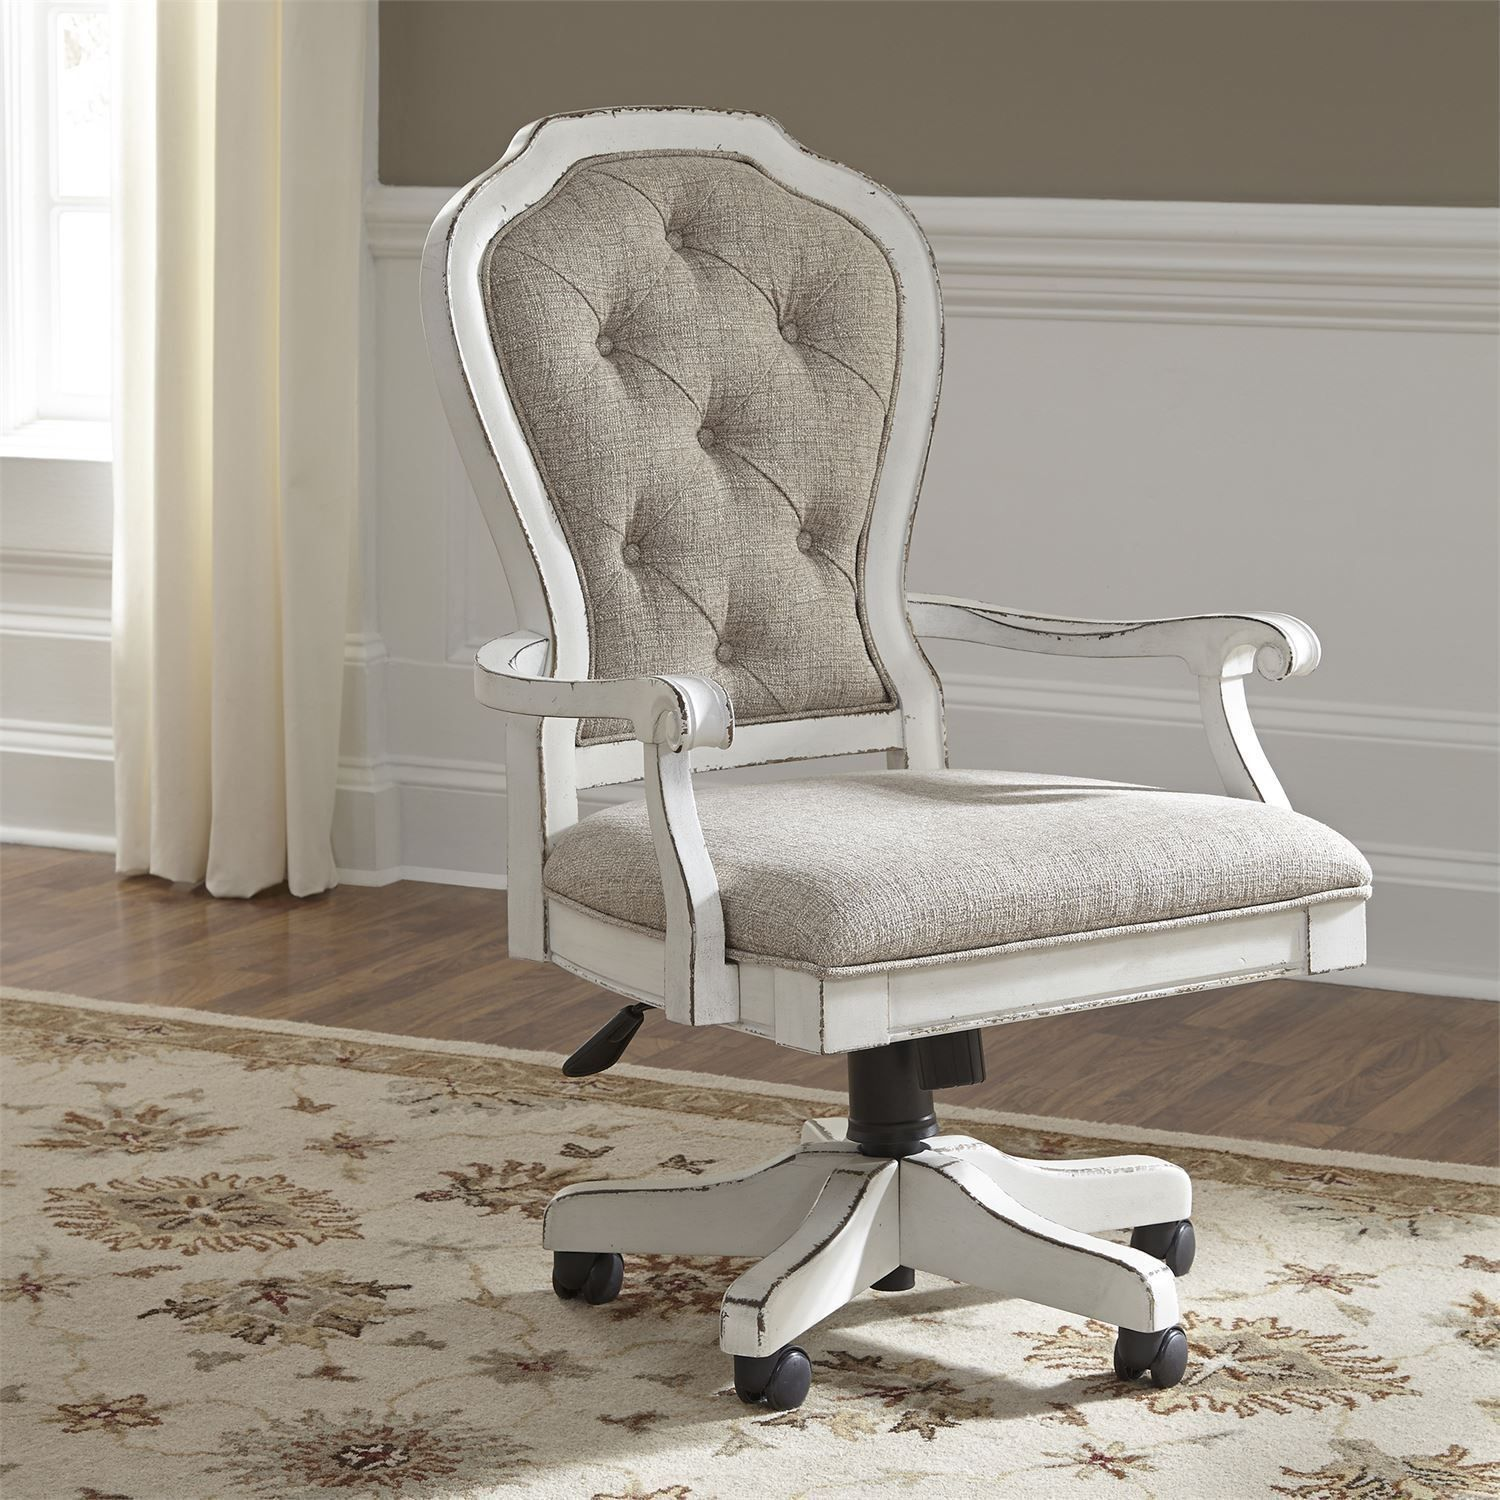 Magnolia Manor Antique White Jr Executive Desk Chair In 2020